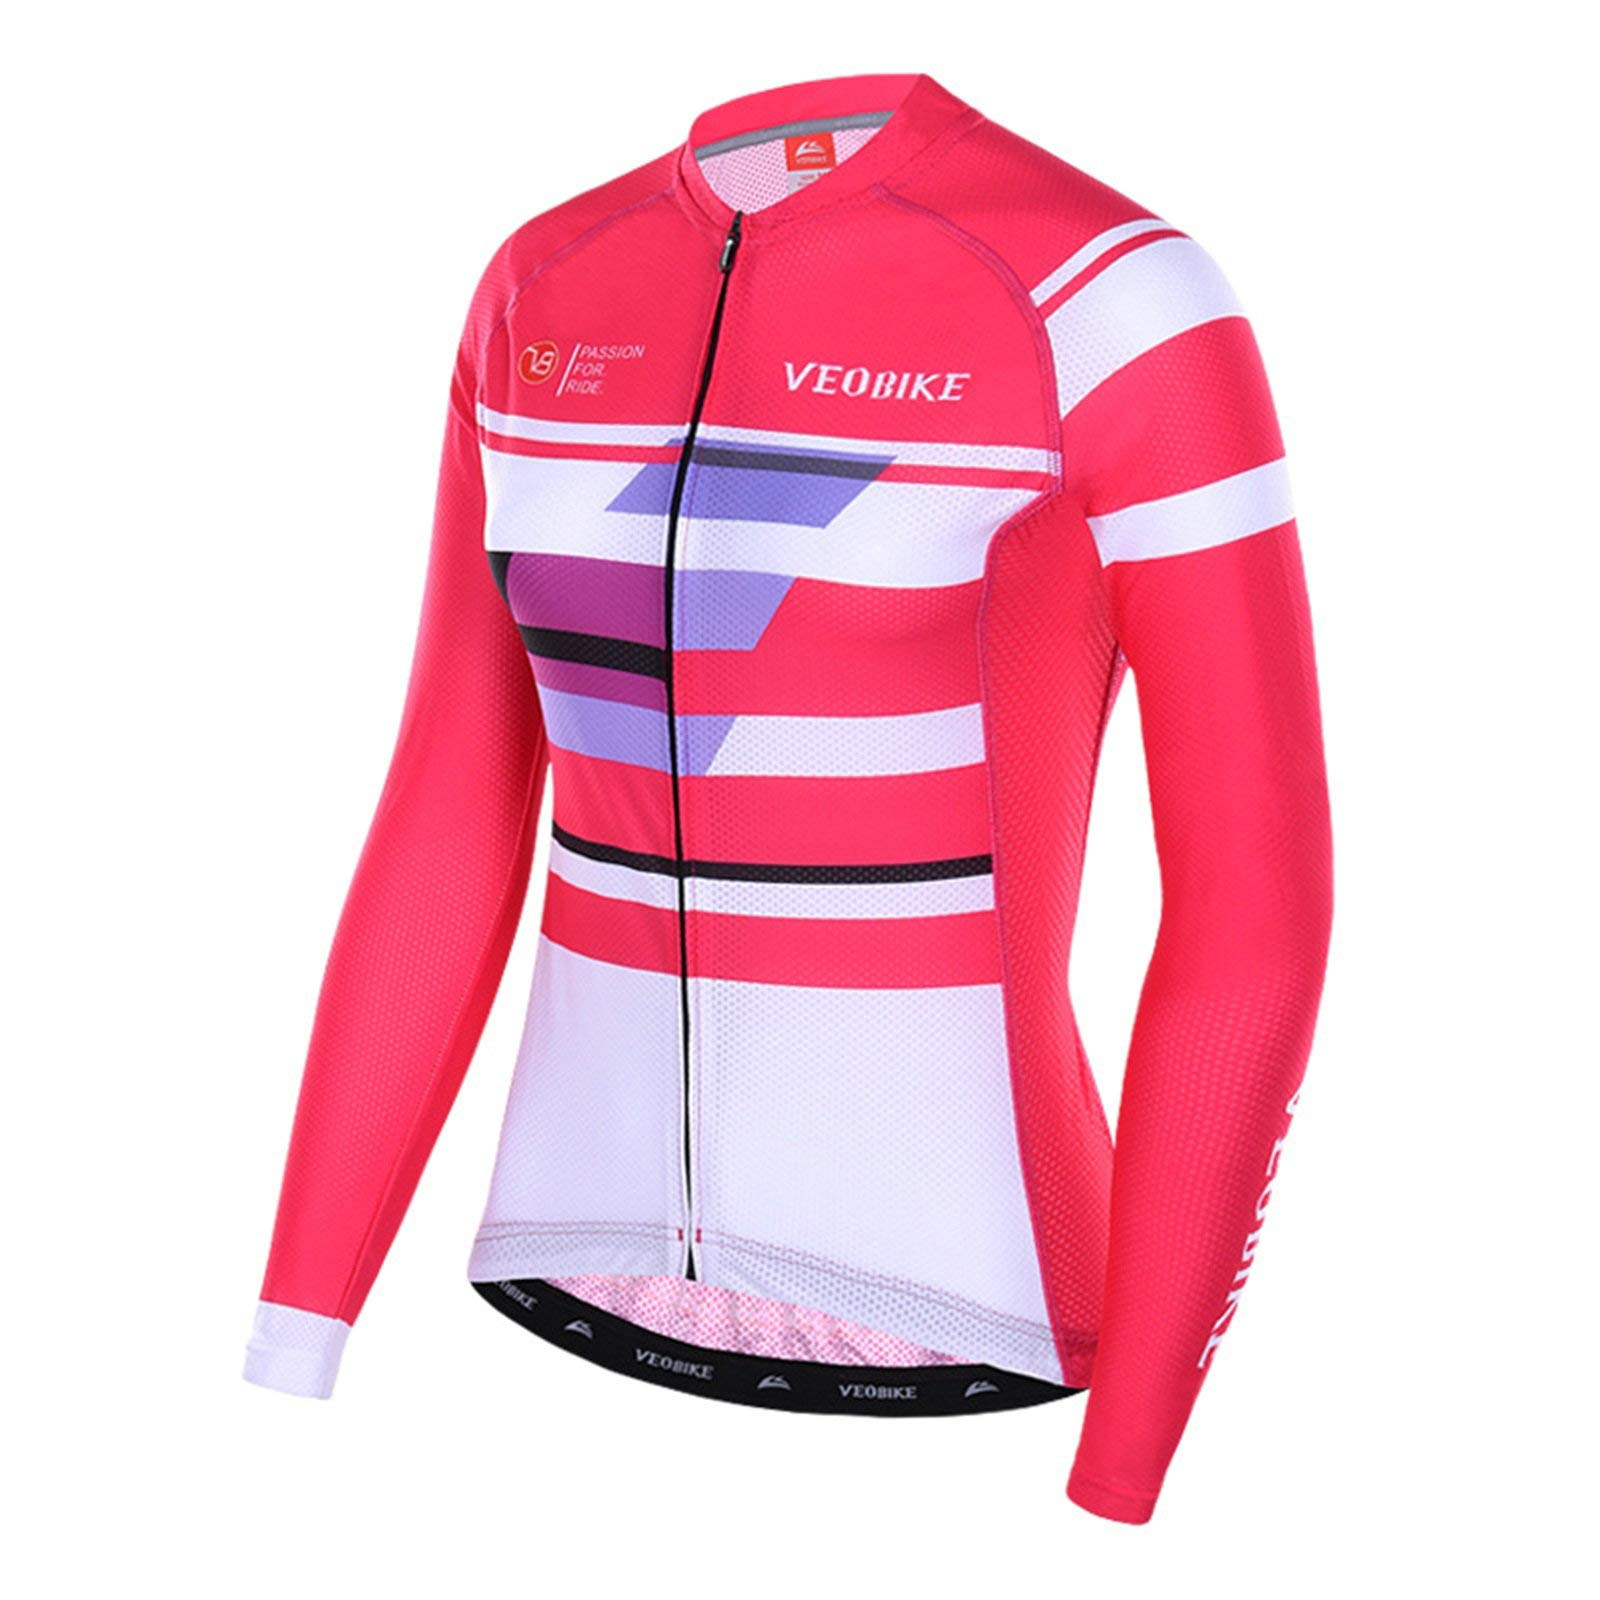 Aooaz Women's Cycling Clothes Full Sleeve Riding Wear Long Sleeve Mountain Bike T Shirts Pink Size S